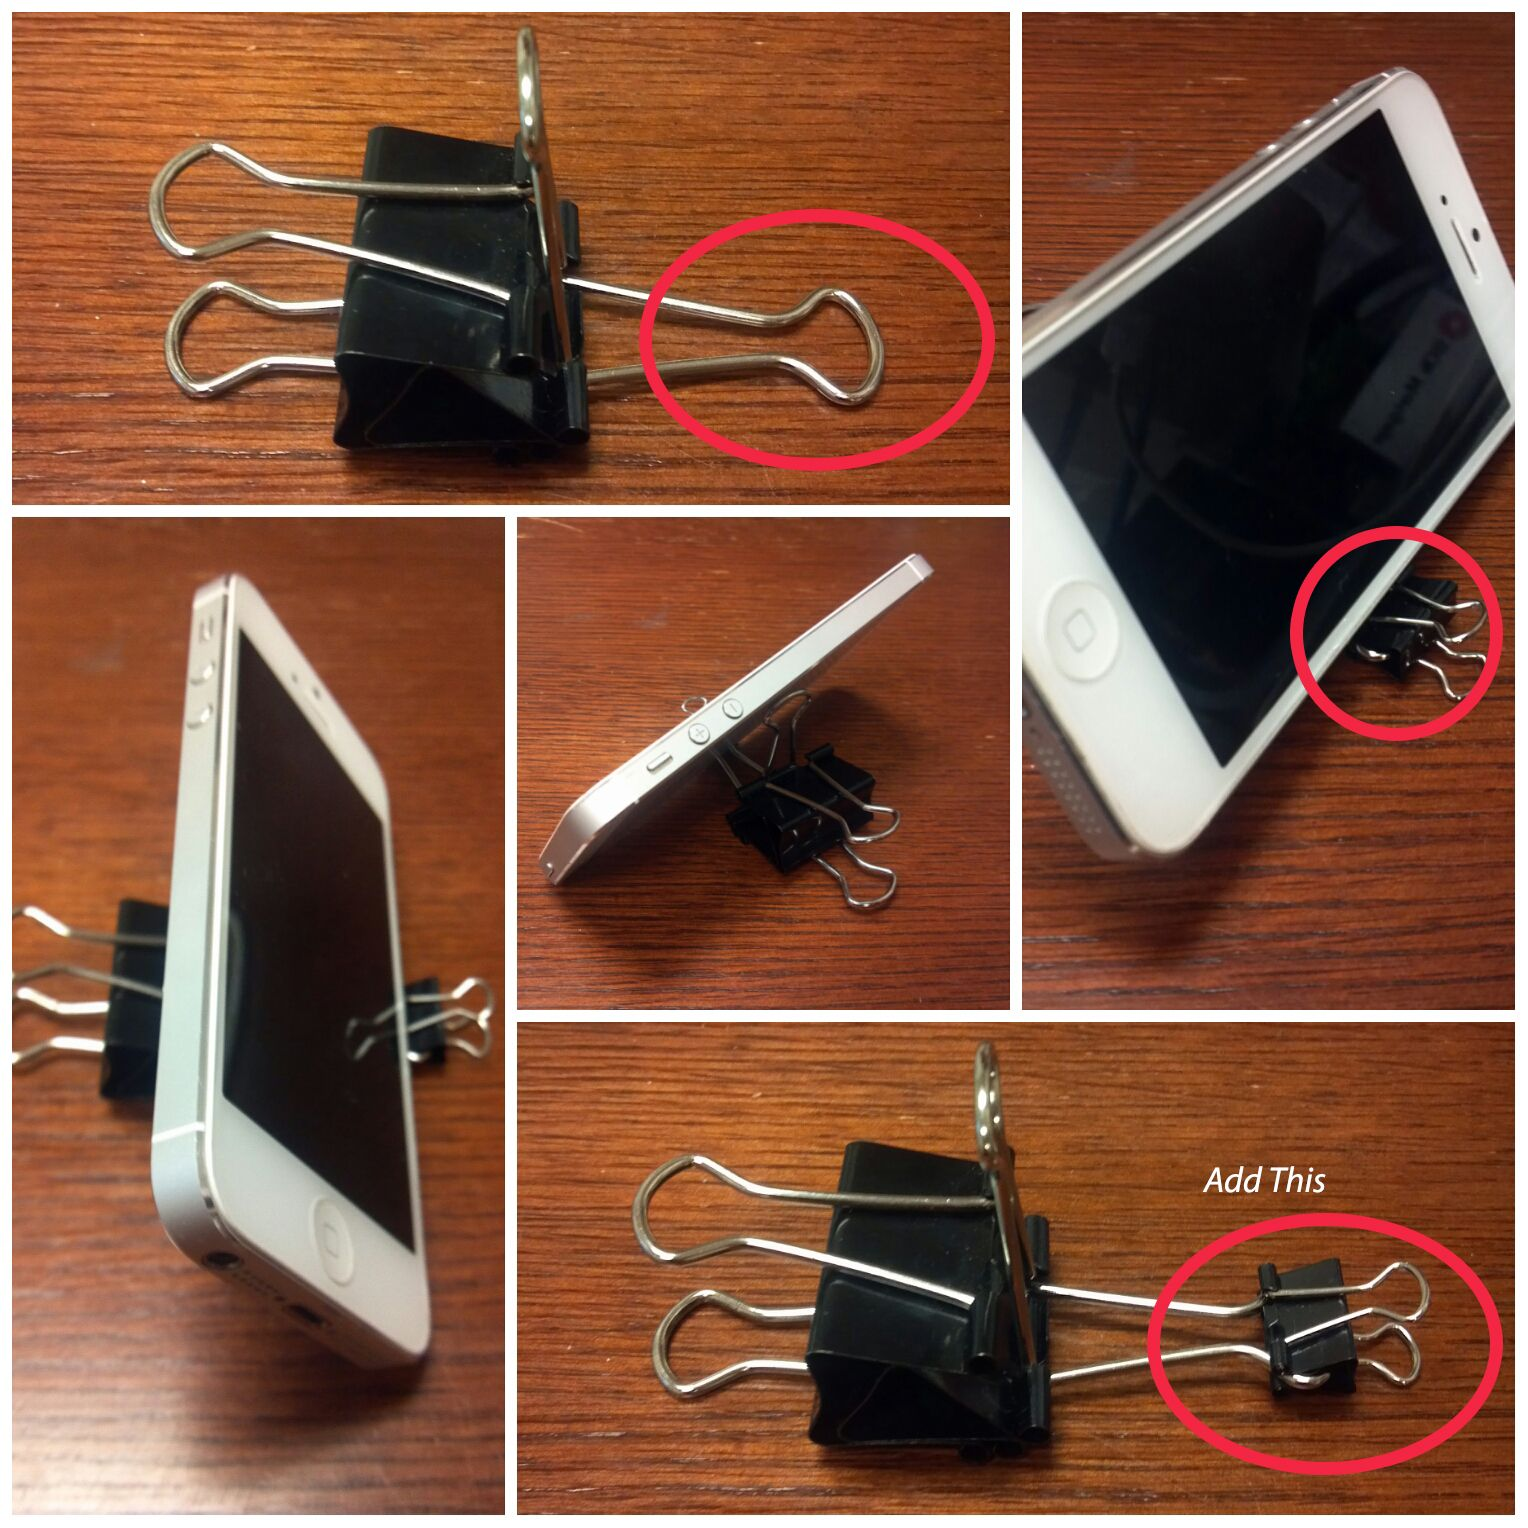 How To Make A Phone Stand With Binder Clips